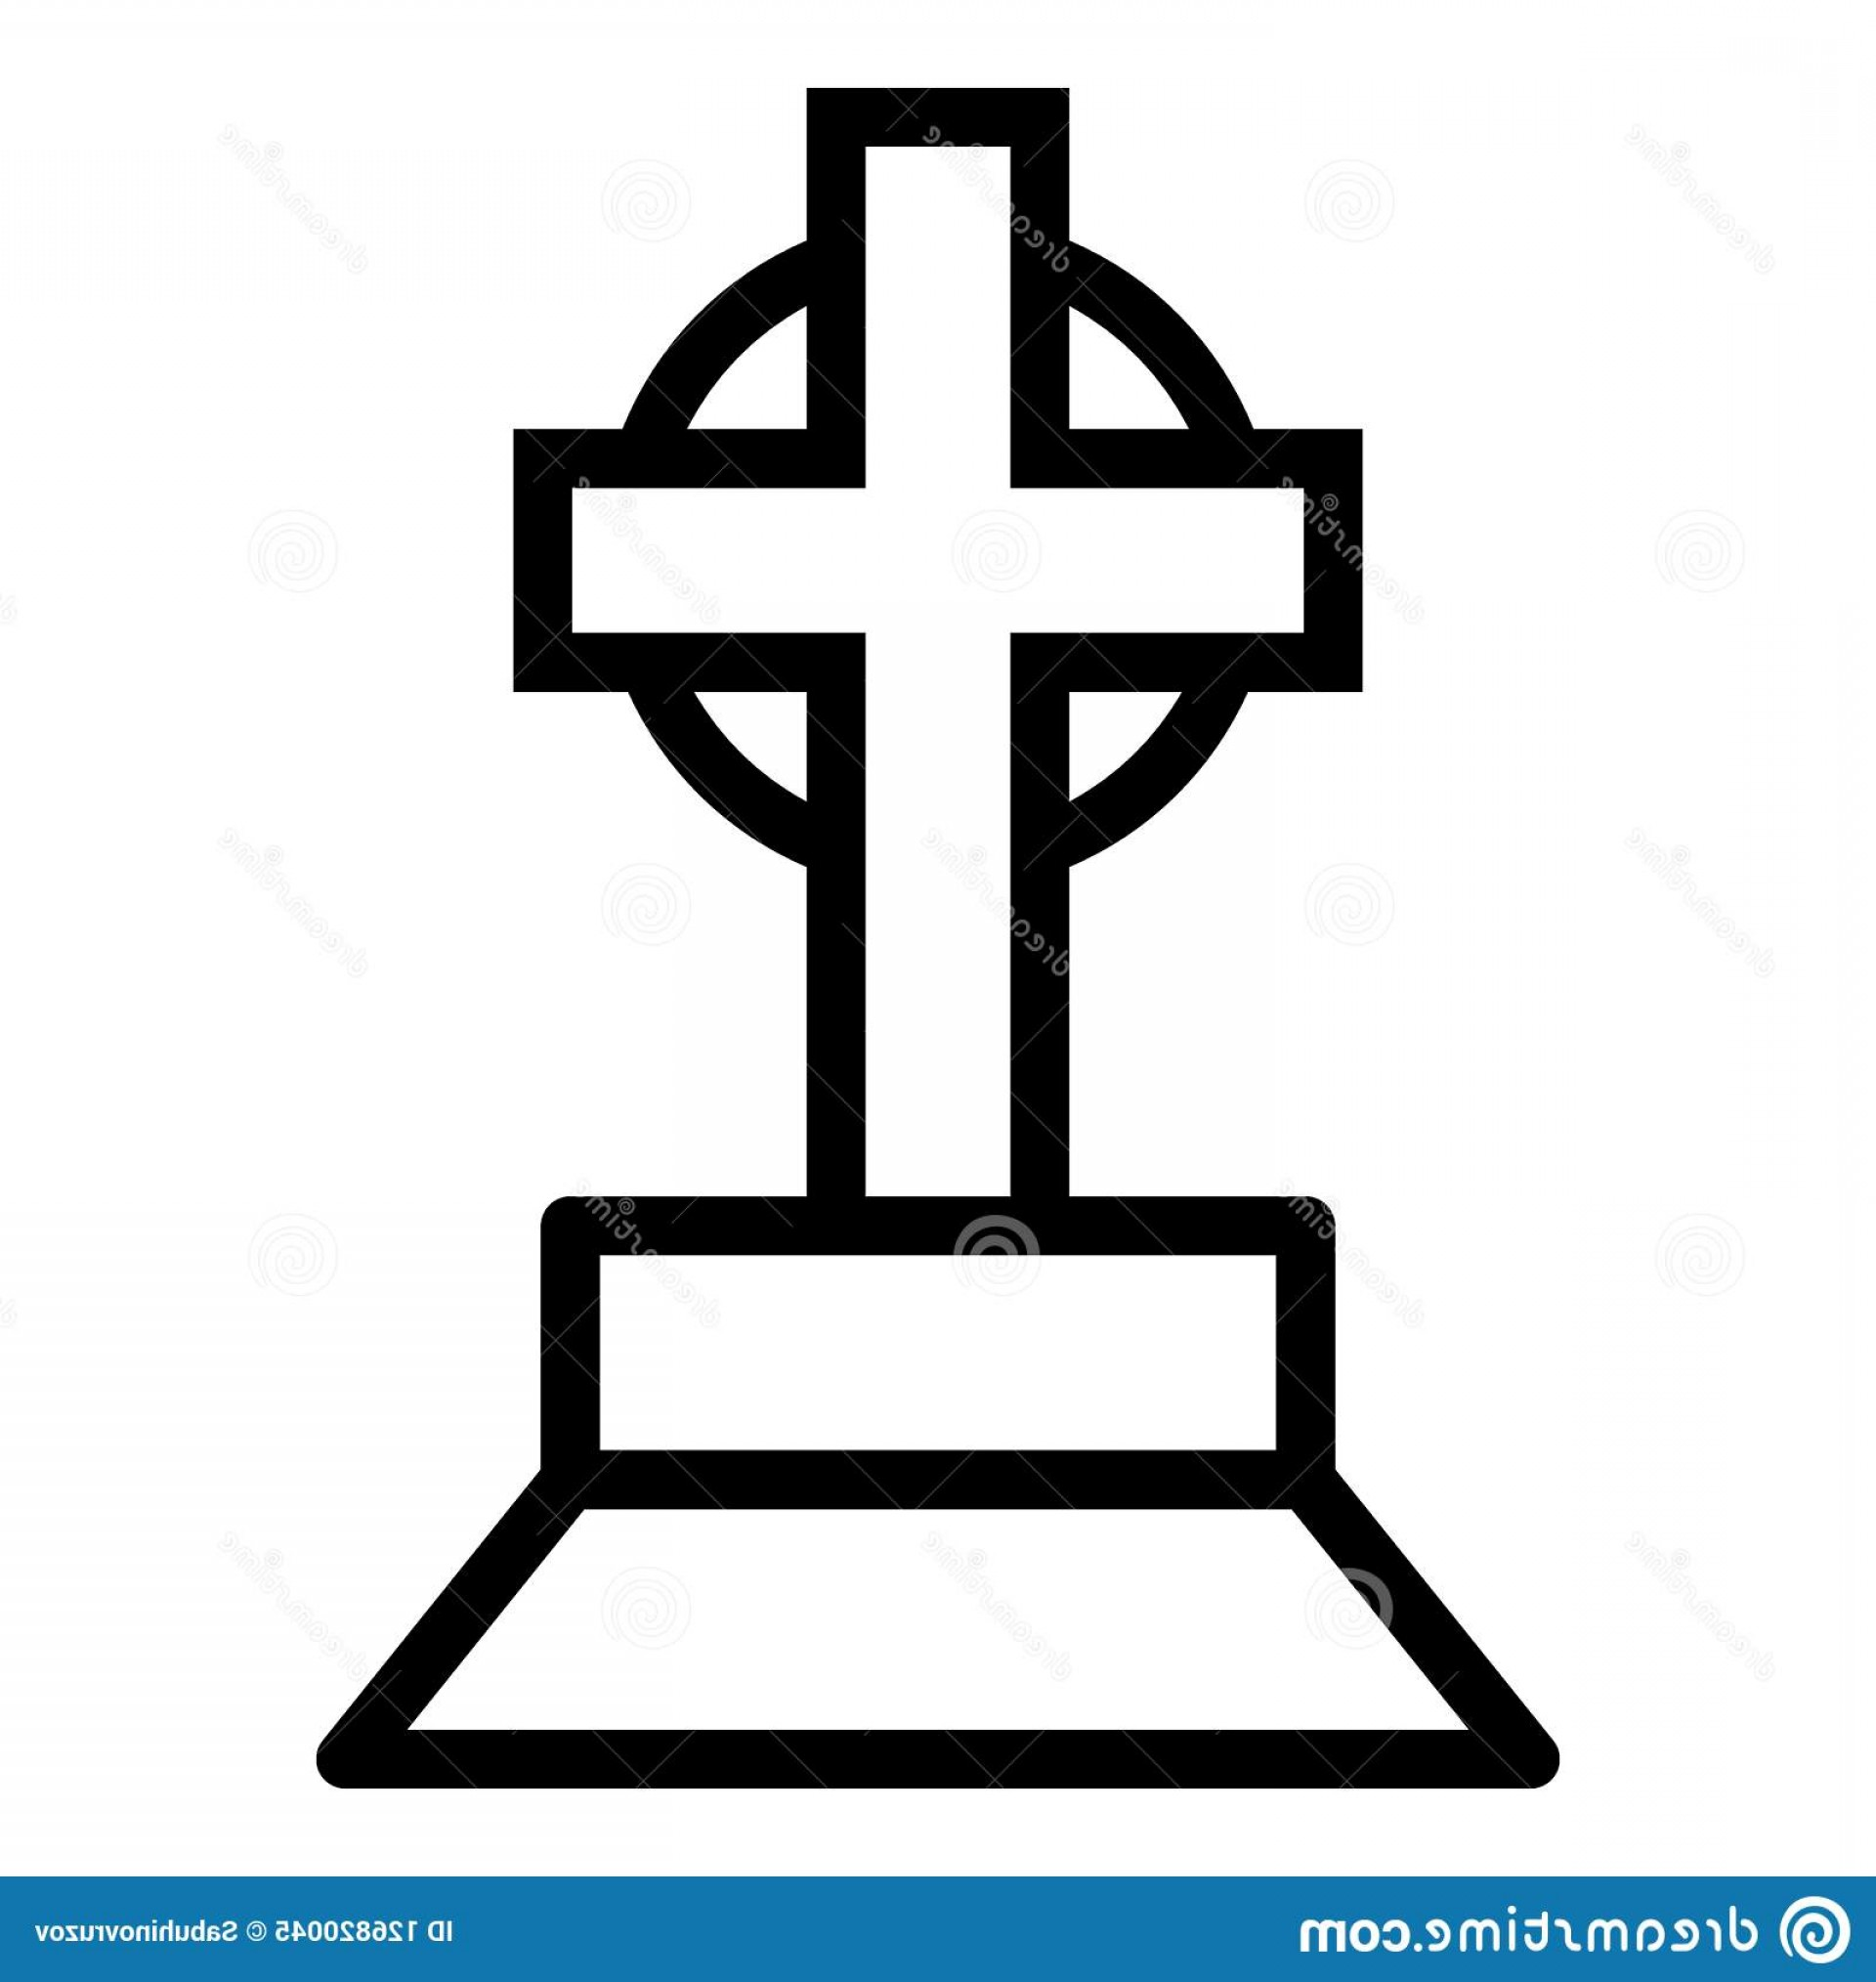 Gravestone Outline Vector: Halloween Grave Cross Line Icon Burial Vector Illustration Isolated White Tombstone Outline Style Design Halloween Image